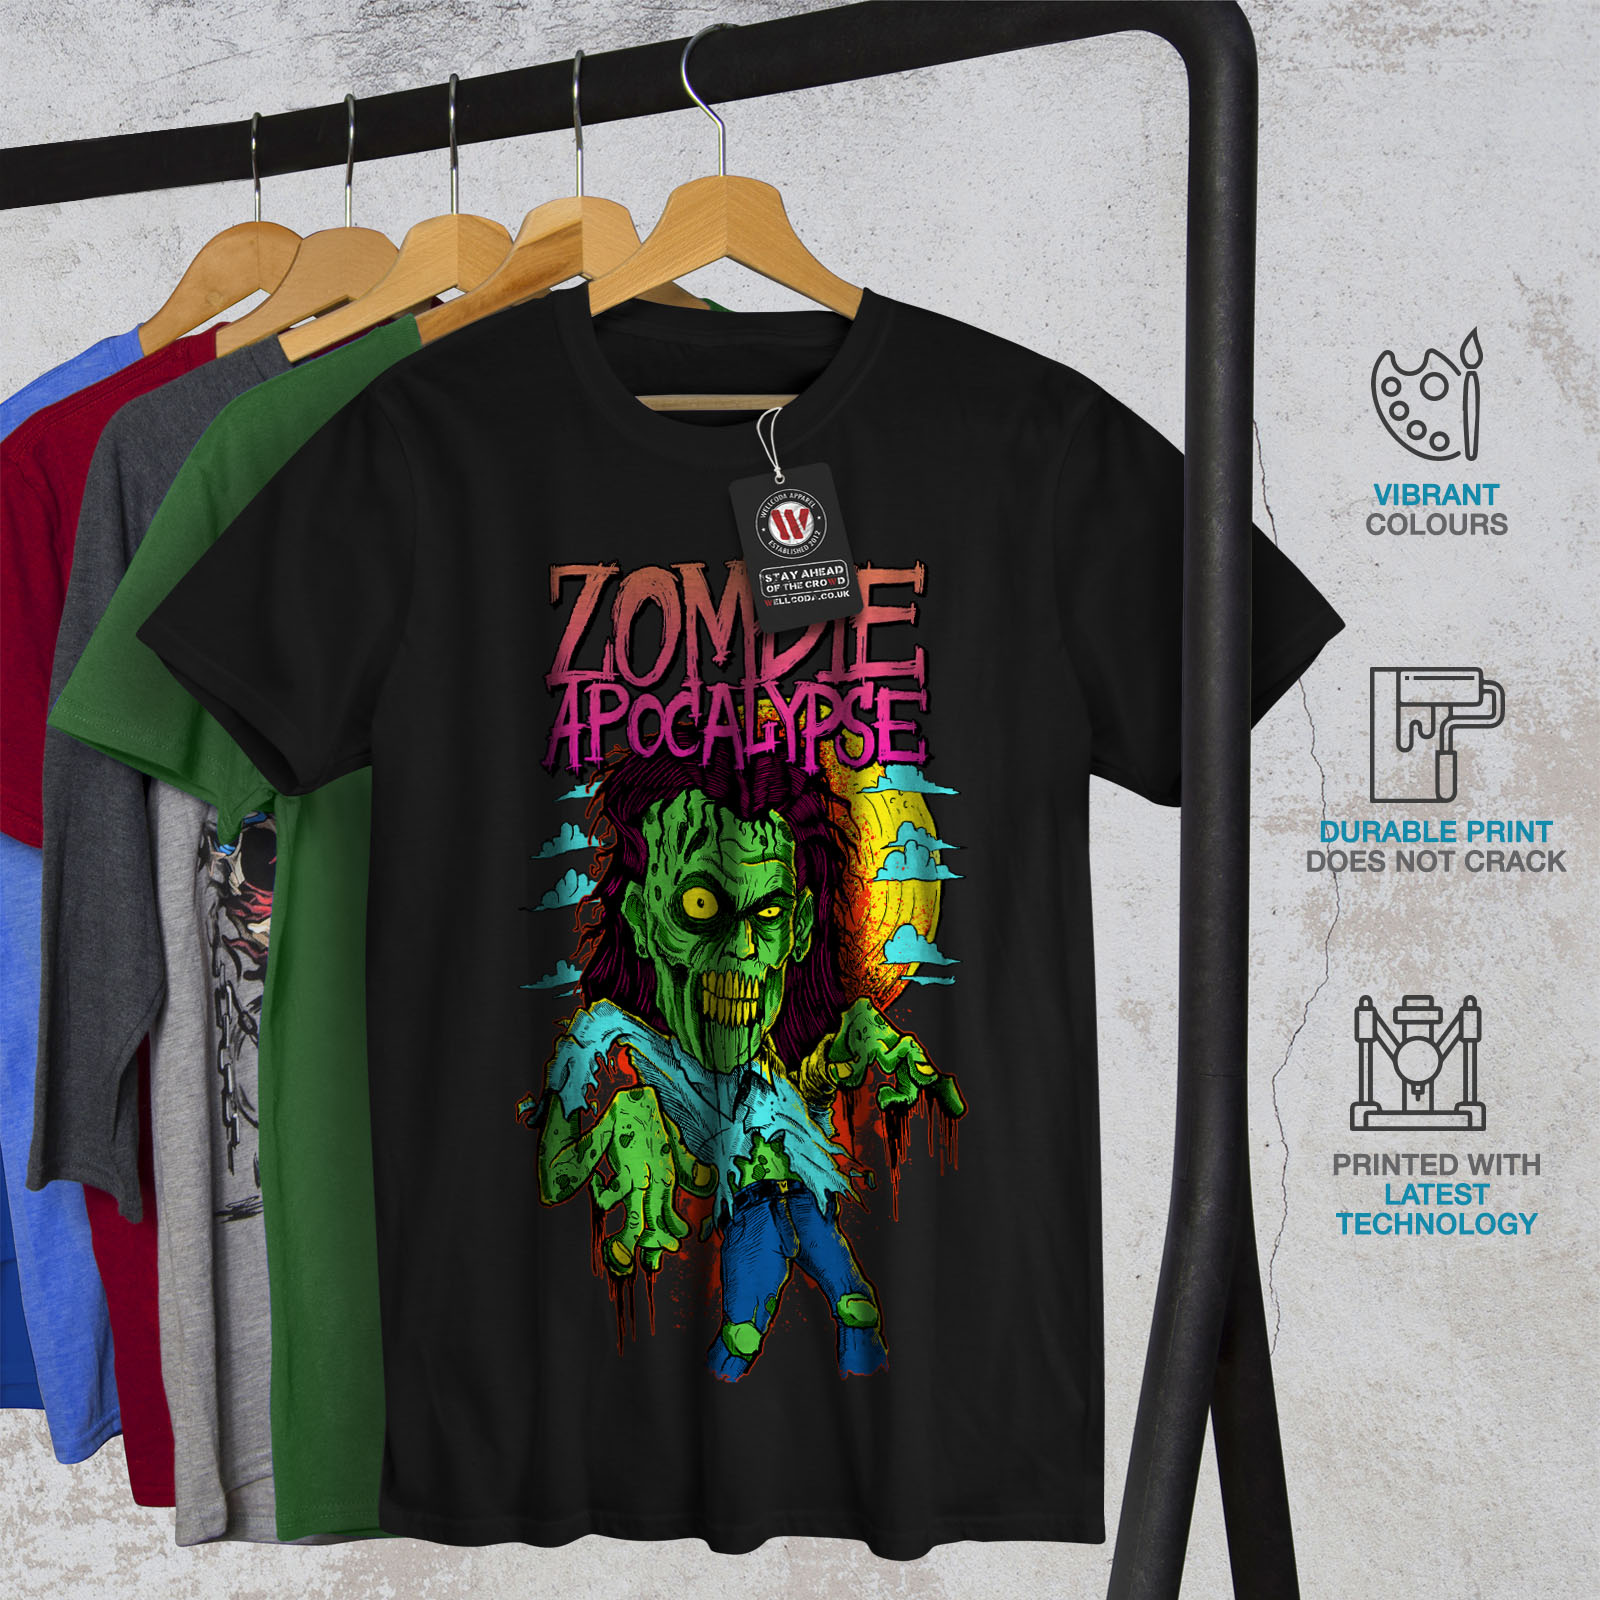 Wellcoda-Zombie-Apocalypse-Horror-Mens-T-shirt-Graphic-Design-Printed-Tee thumbnail 6